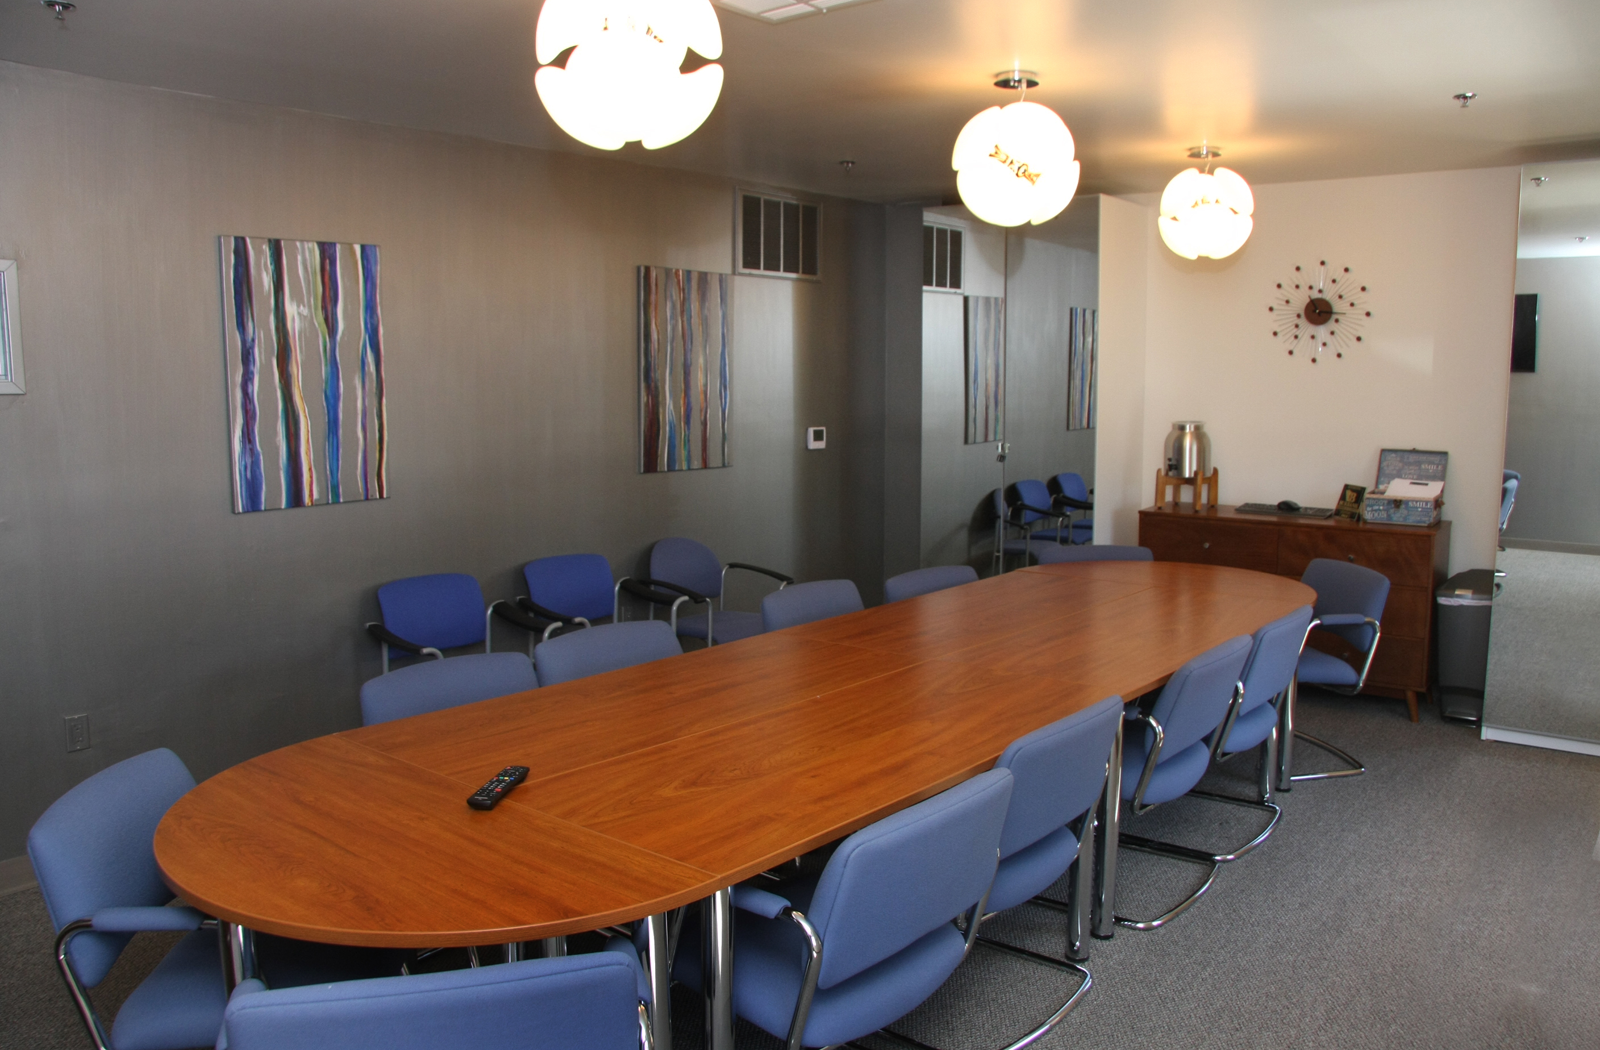 Flexible meeting space at 124 E Olive Ave., Burbank, CA 91502